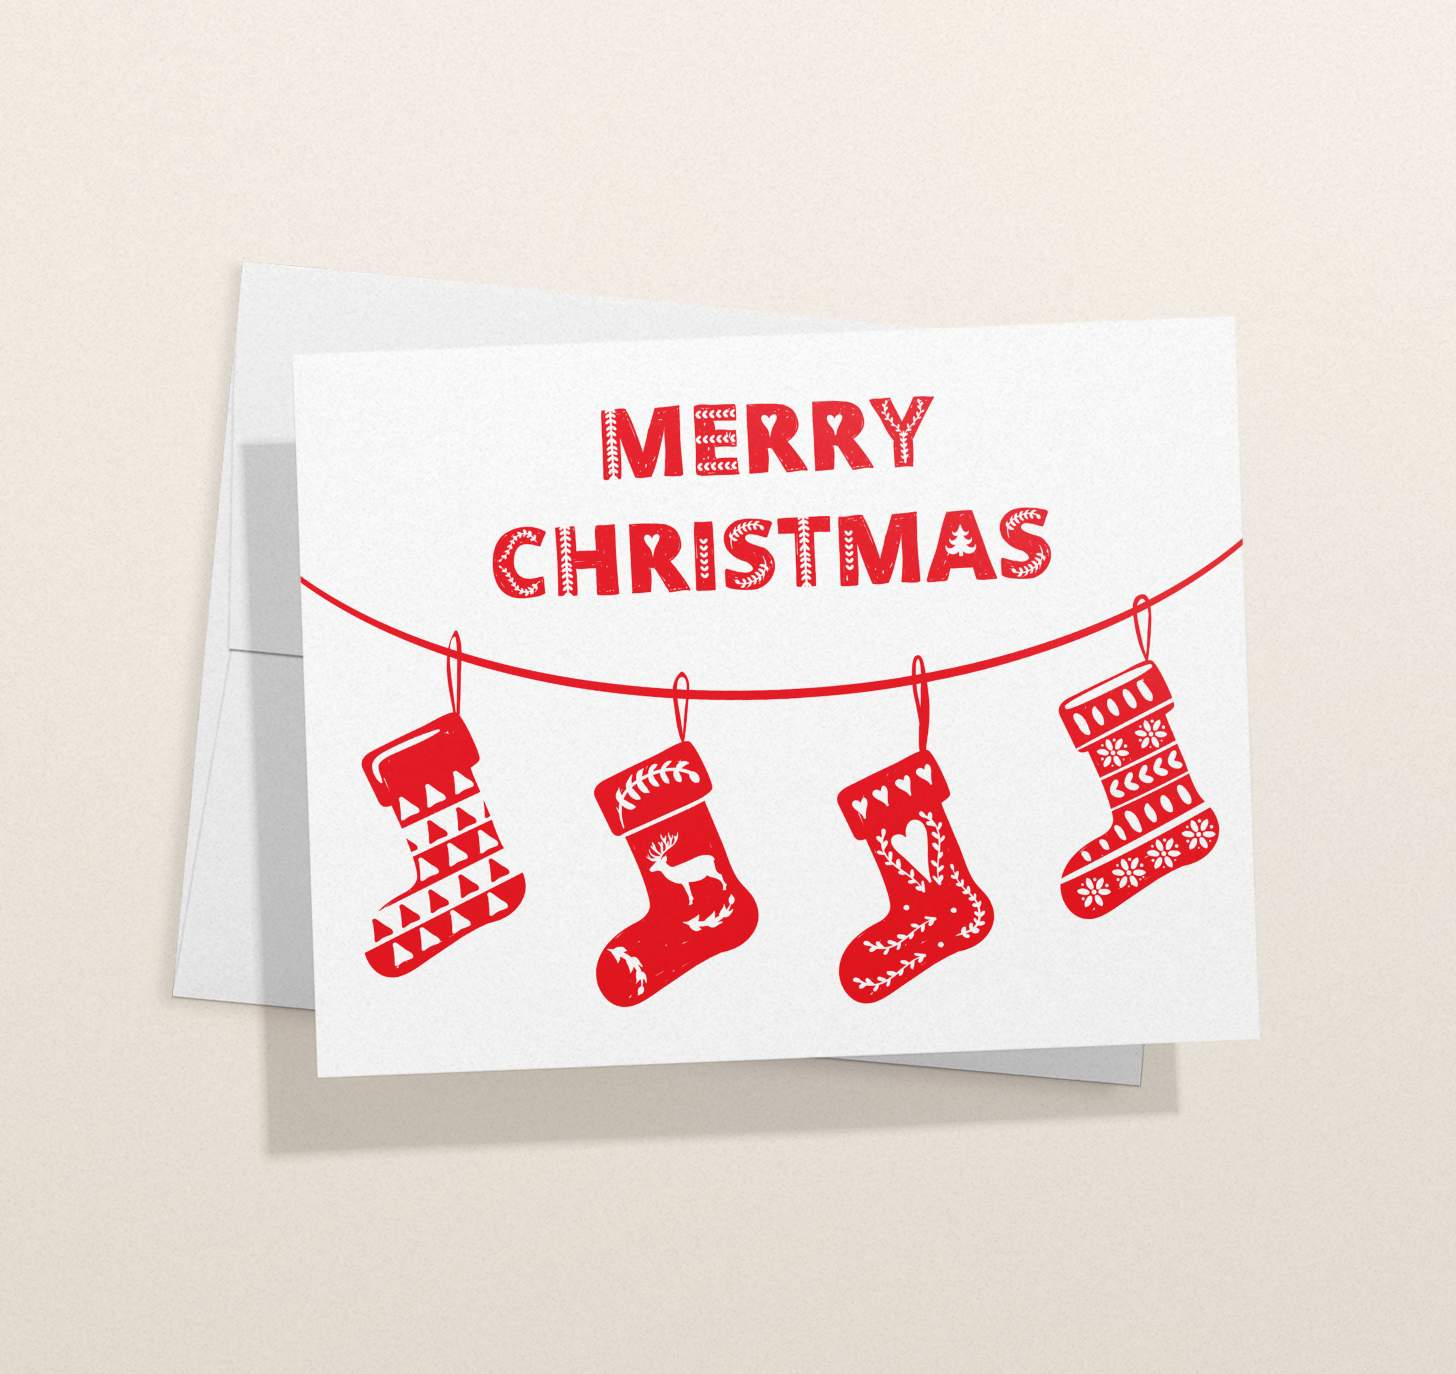 Red and white Merry Christmas with stockings designs with envelope